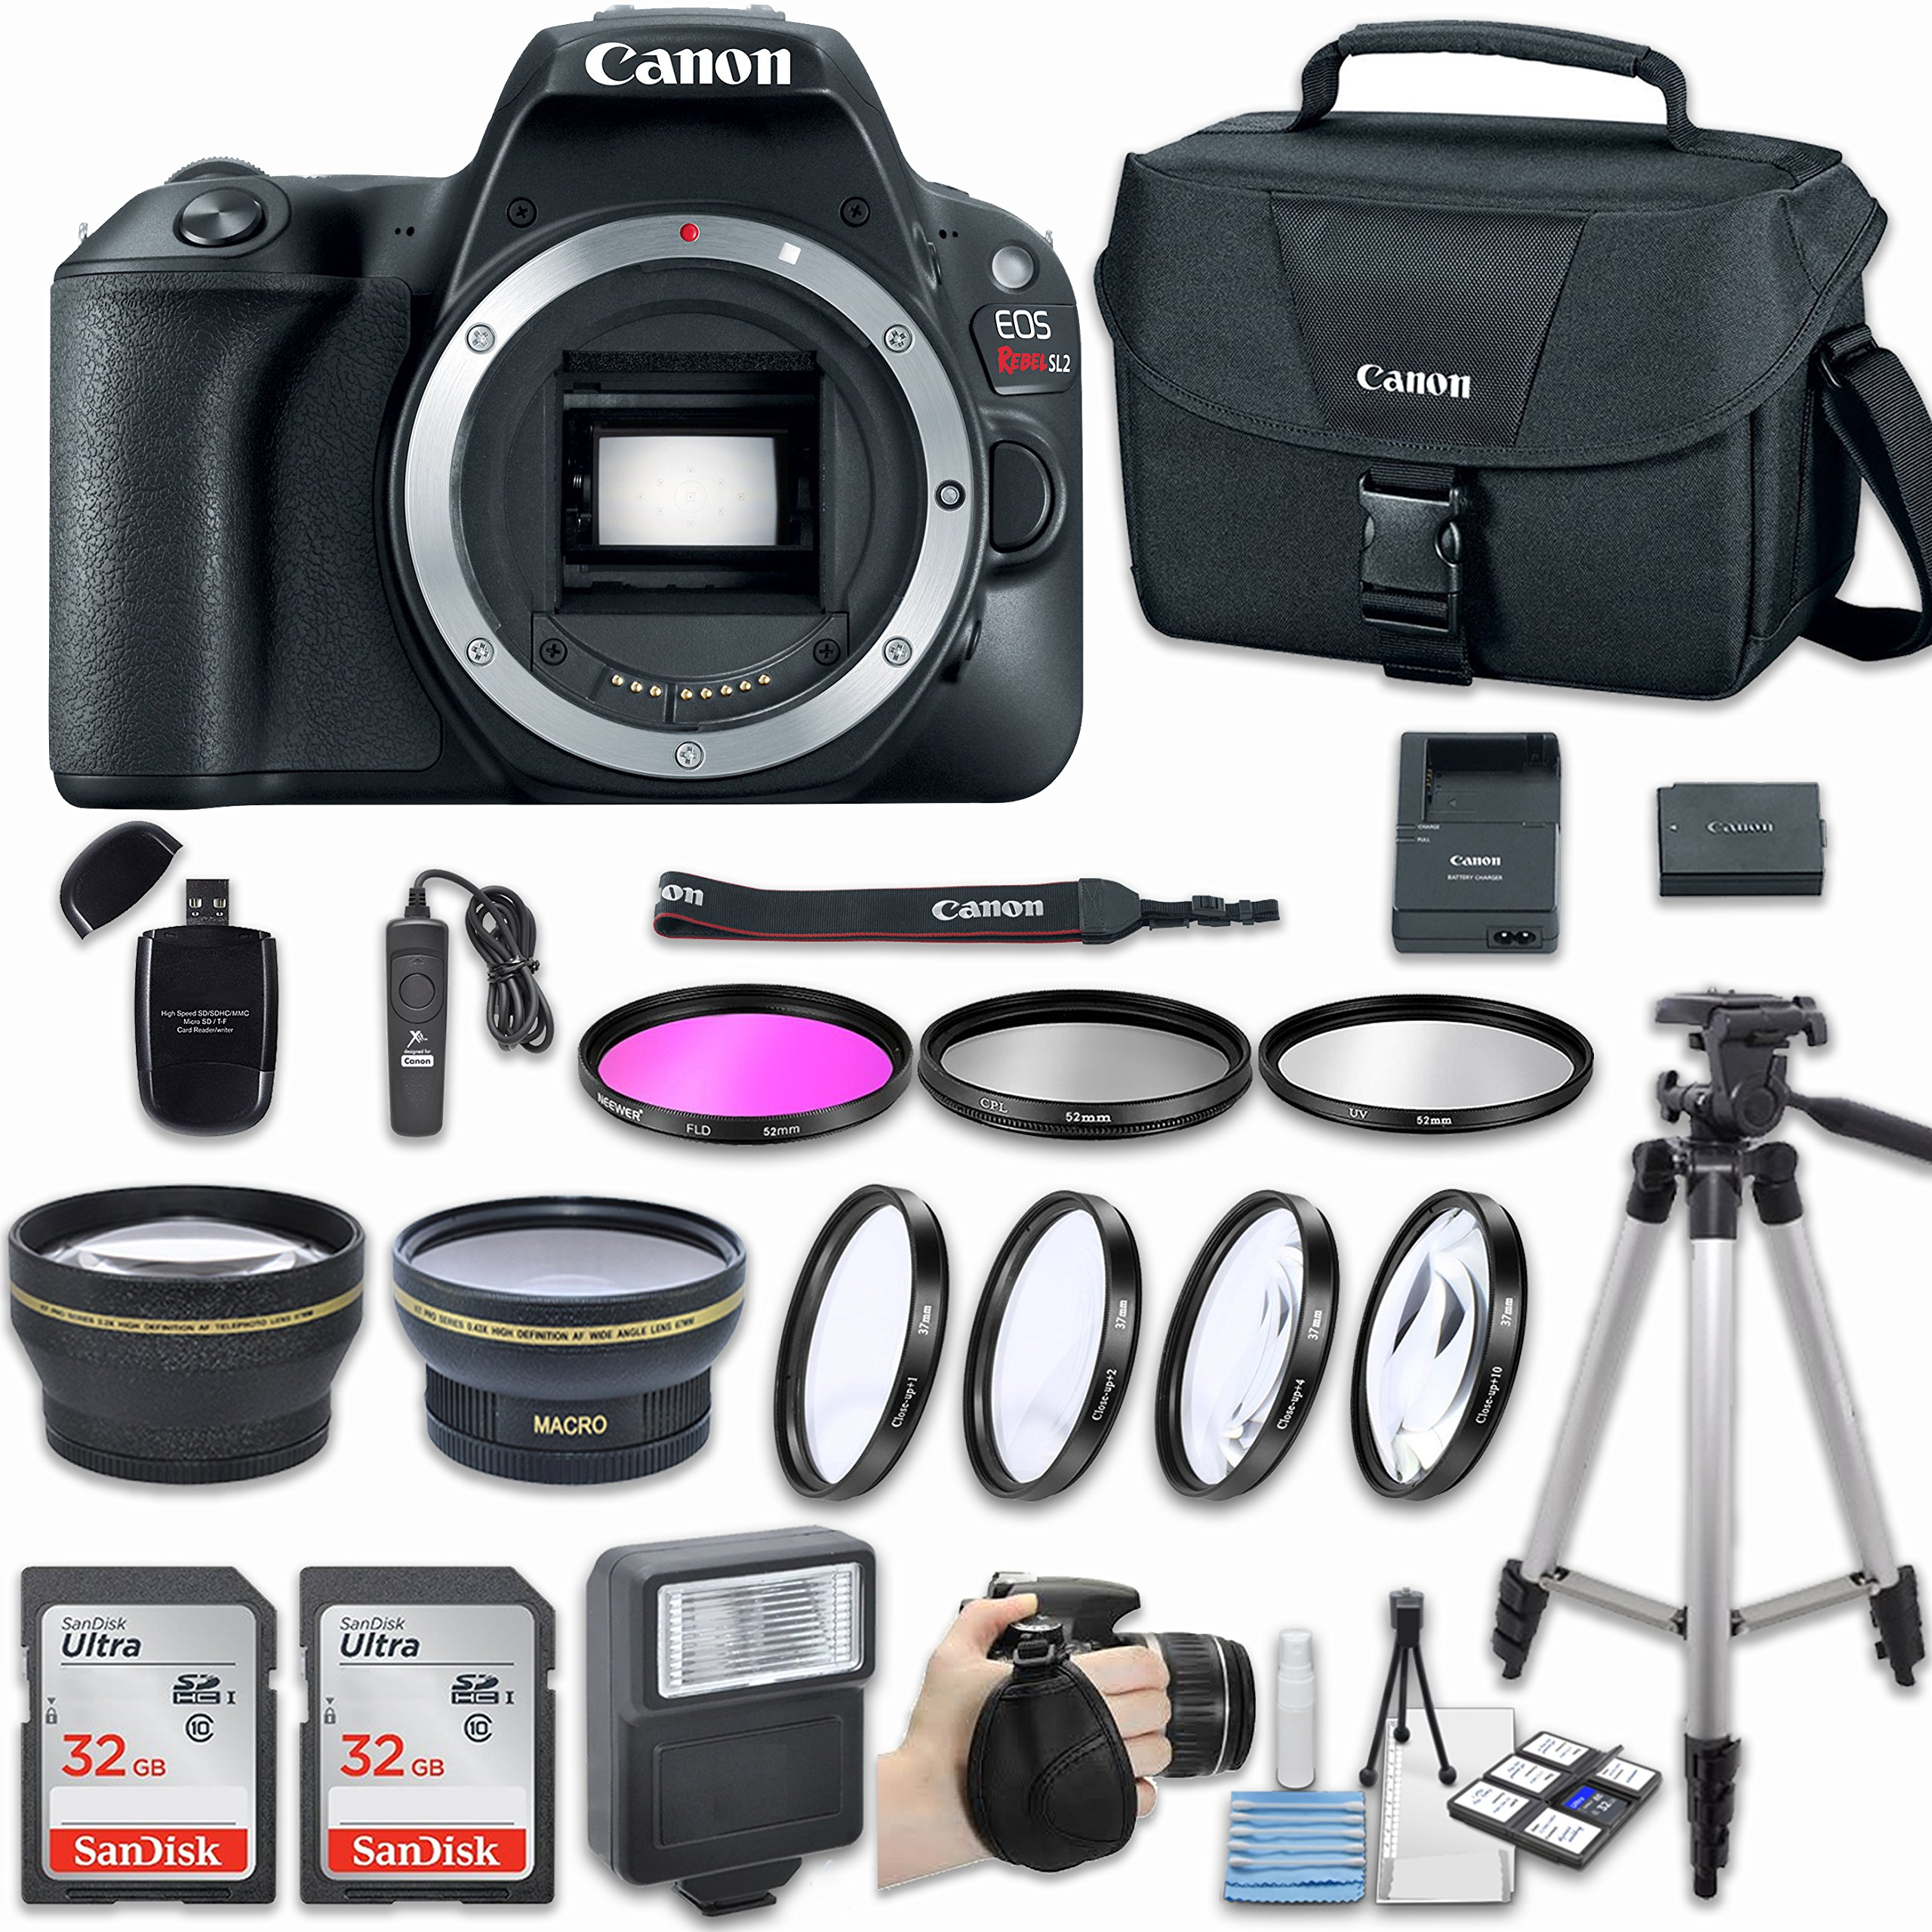 Canon EOS Rebel SL2 DSLR Camera (Body Only) with Bundle - Includes 58mm HD Wide Angle Lens + 2.2x Telephoto + 2Pcs 32GB Sandisk SD Memory + Filter & Macro Kit & More Accessories by Canon